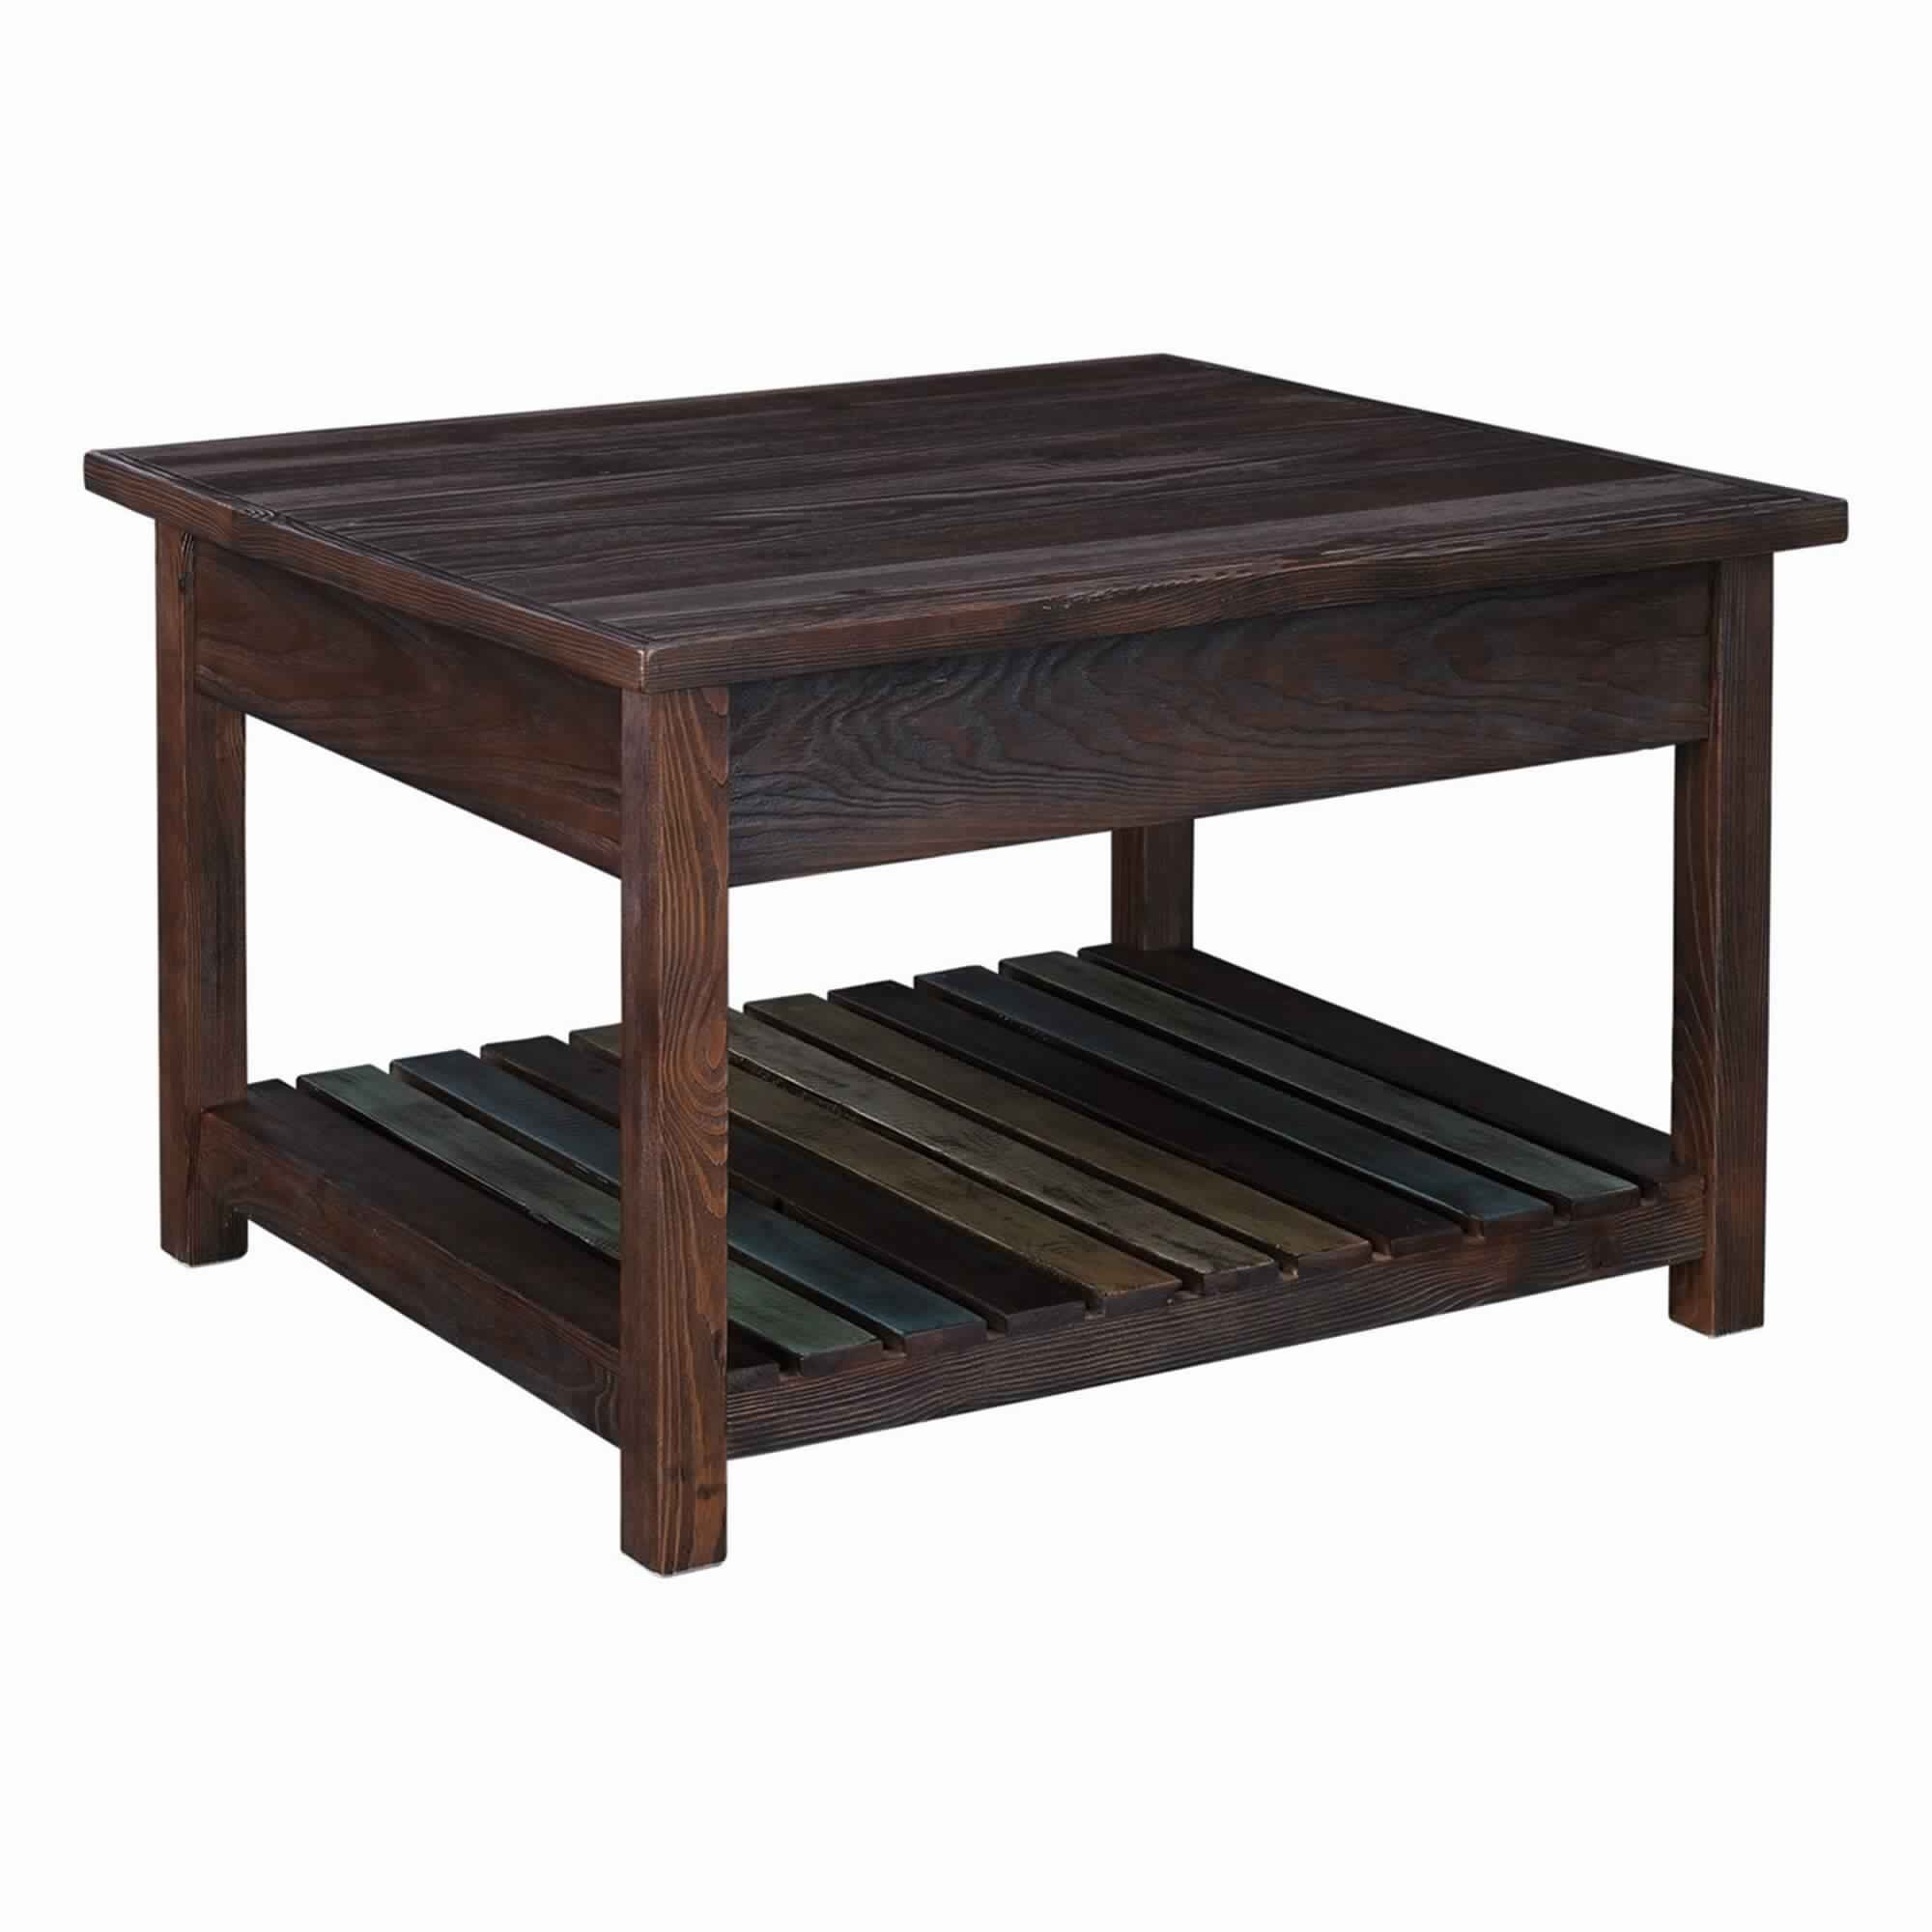 Loon Peak Signorelli Lift Top Floor Shelf Coffee Table With Storage Wayfair